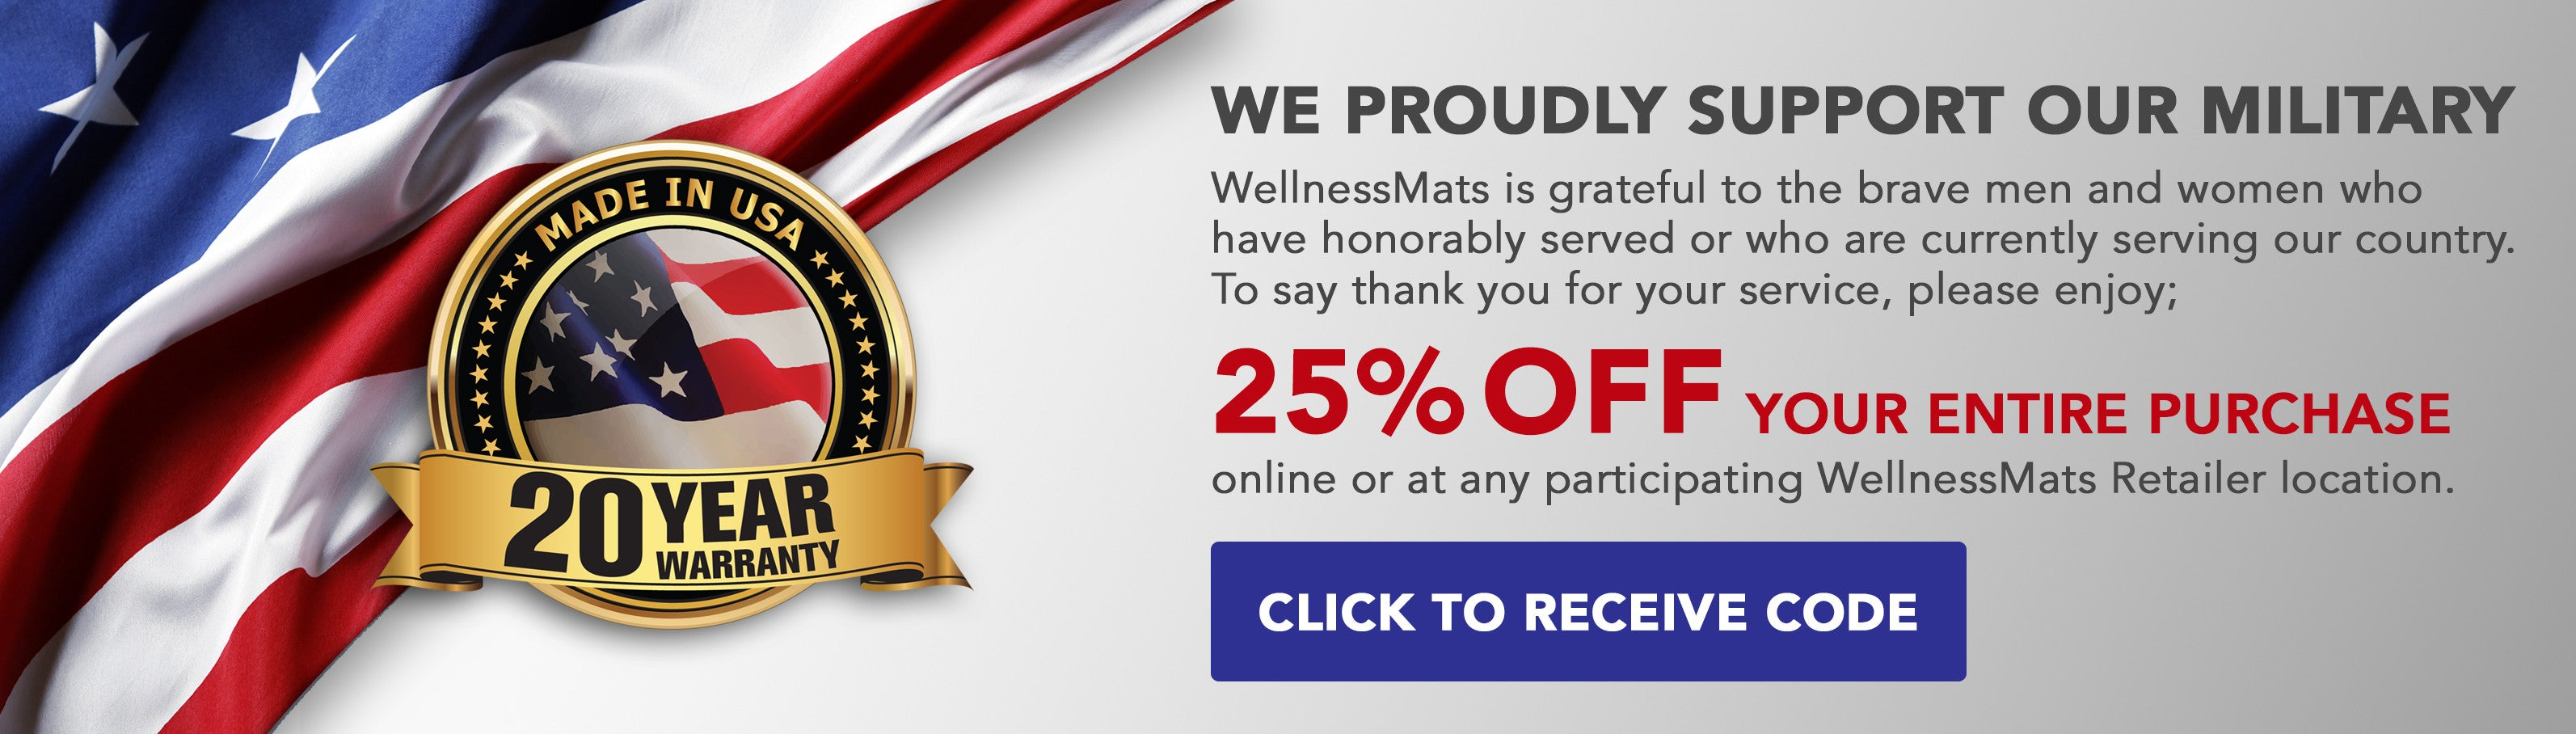 25% off WellnessMats for Military Personnel